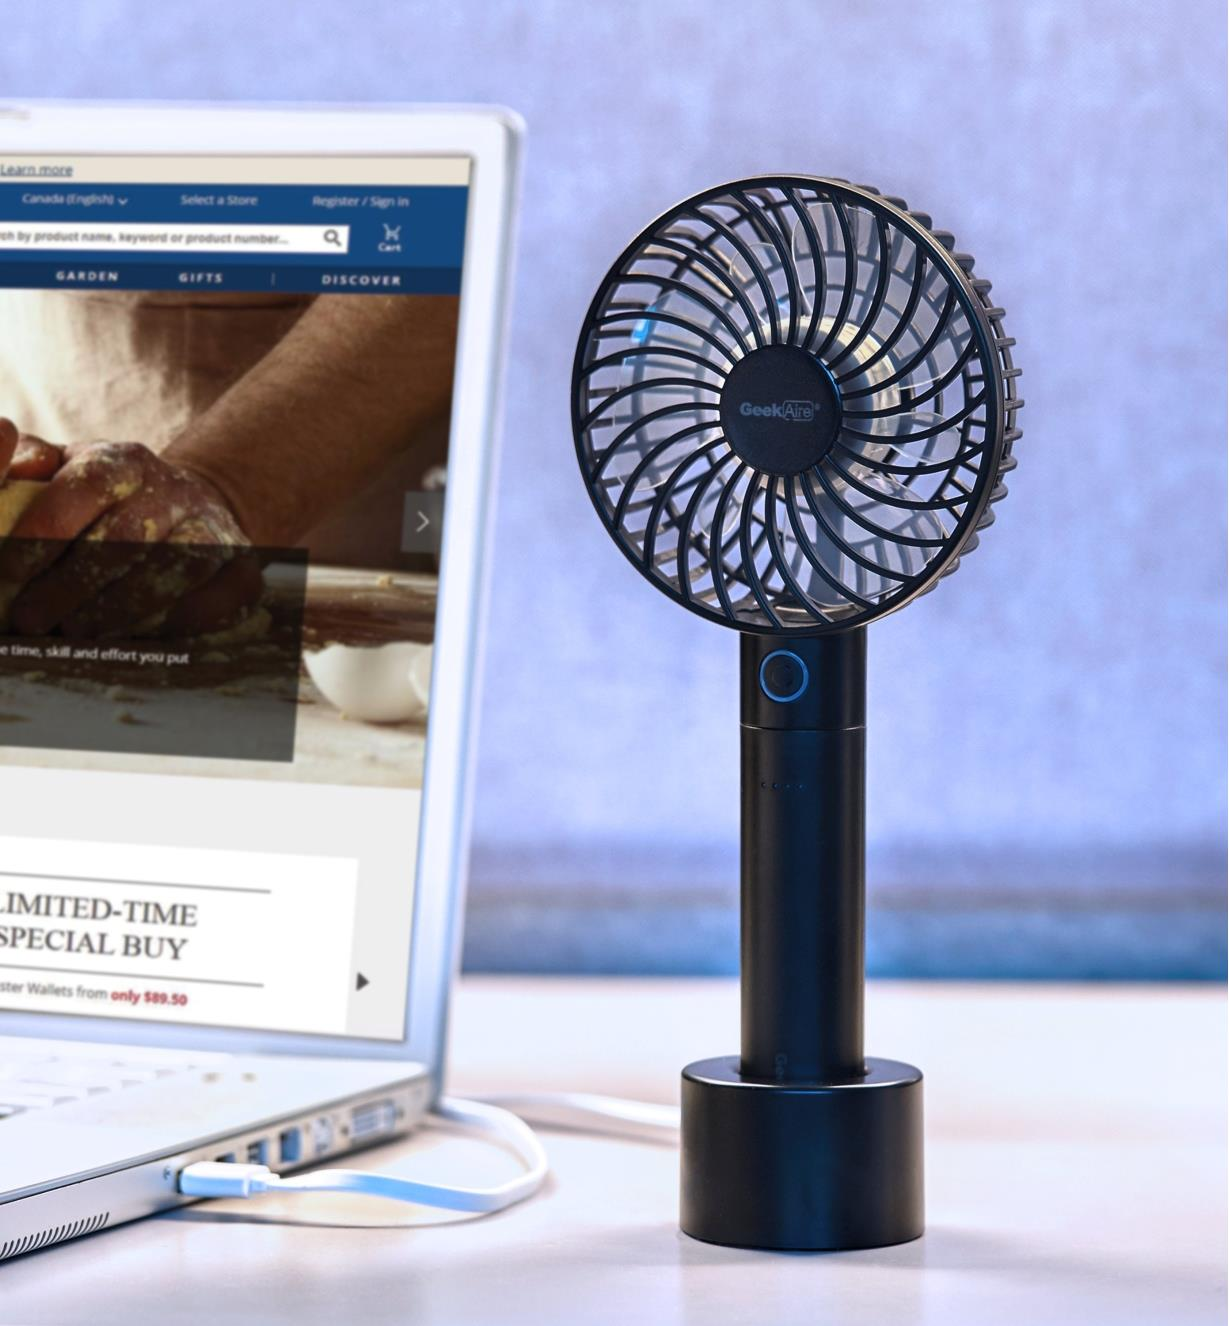 A rechargeable portable turbo fan standing on its non-slip base beside a laptop computer on a desk